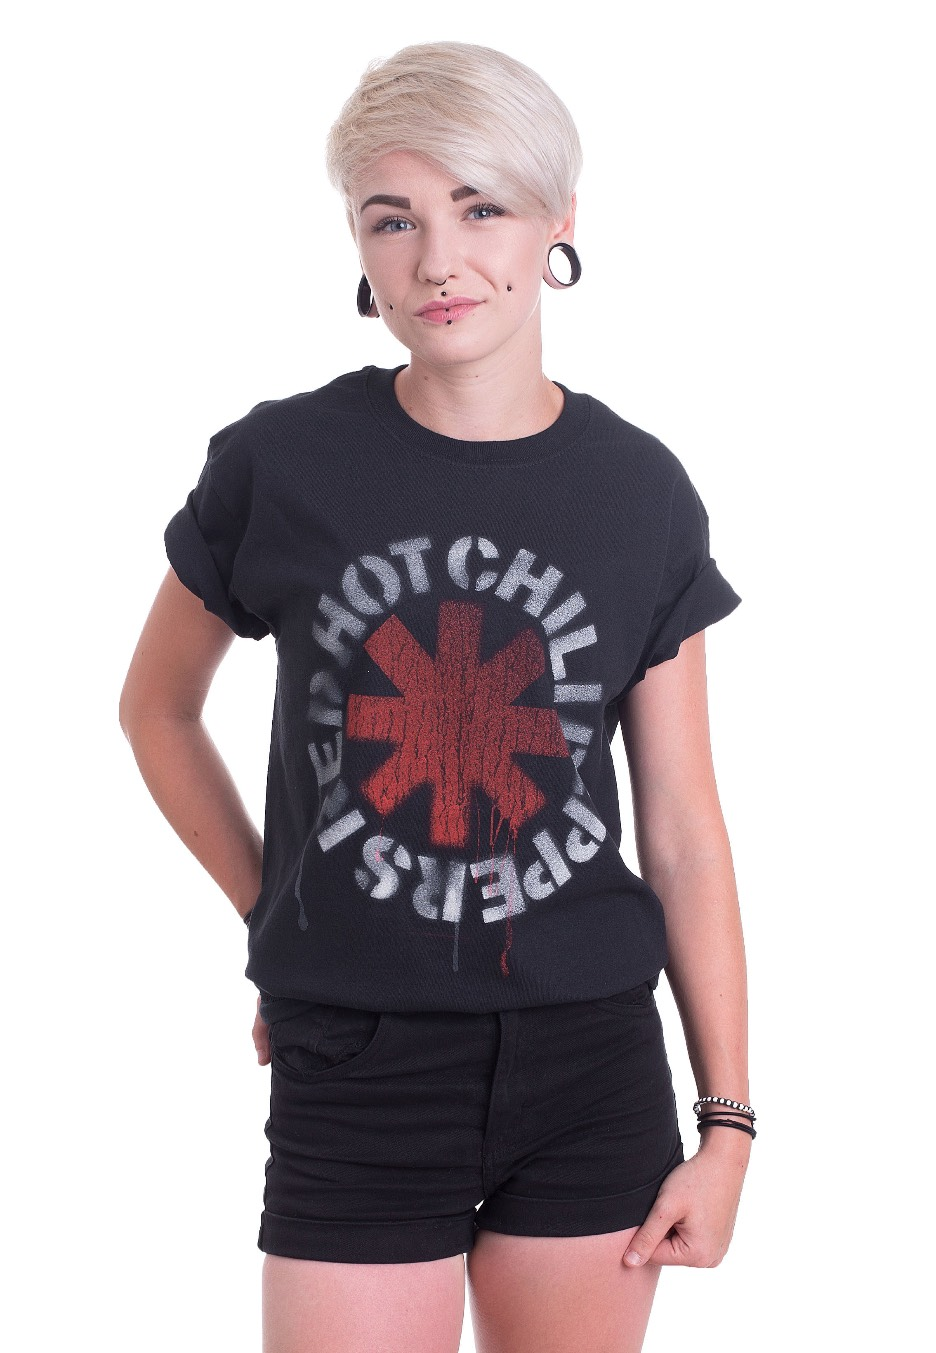 c396862f31ff Red Hot Chili Peppers - Stencil - T-Shirt - Official Pop Merchandise Shop -  Impericon.com AU